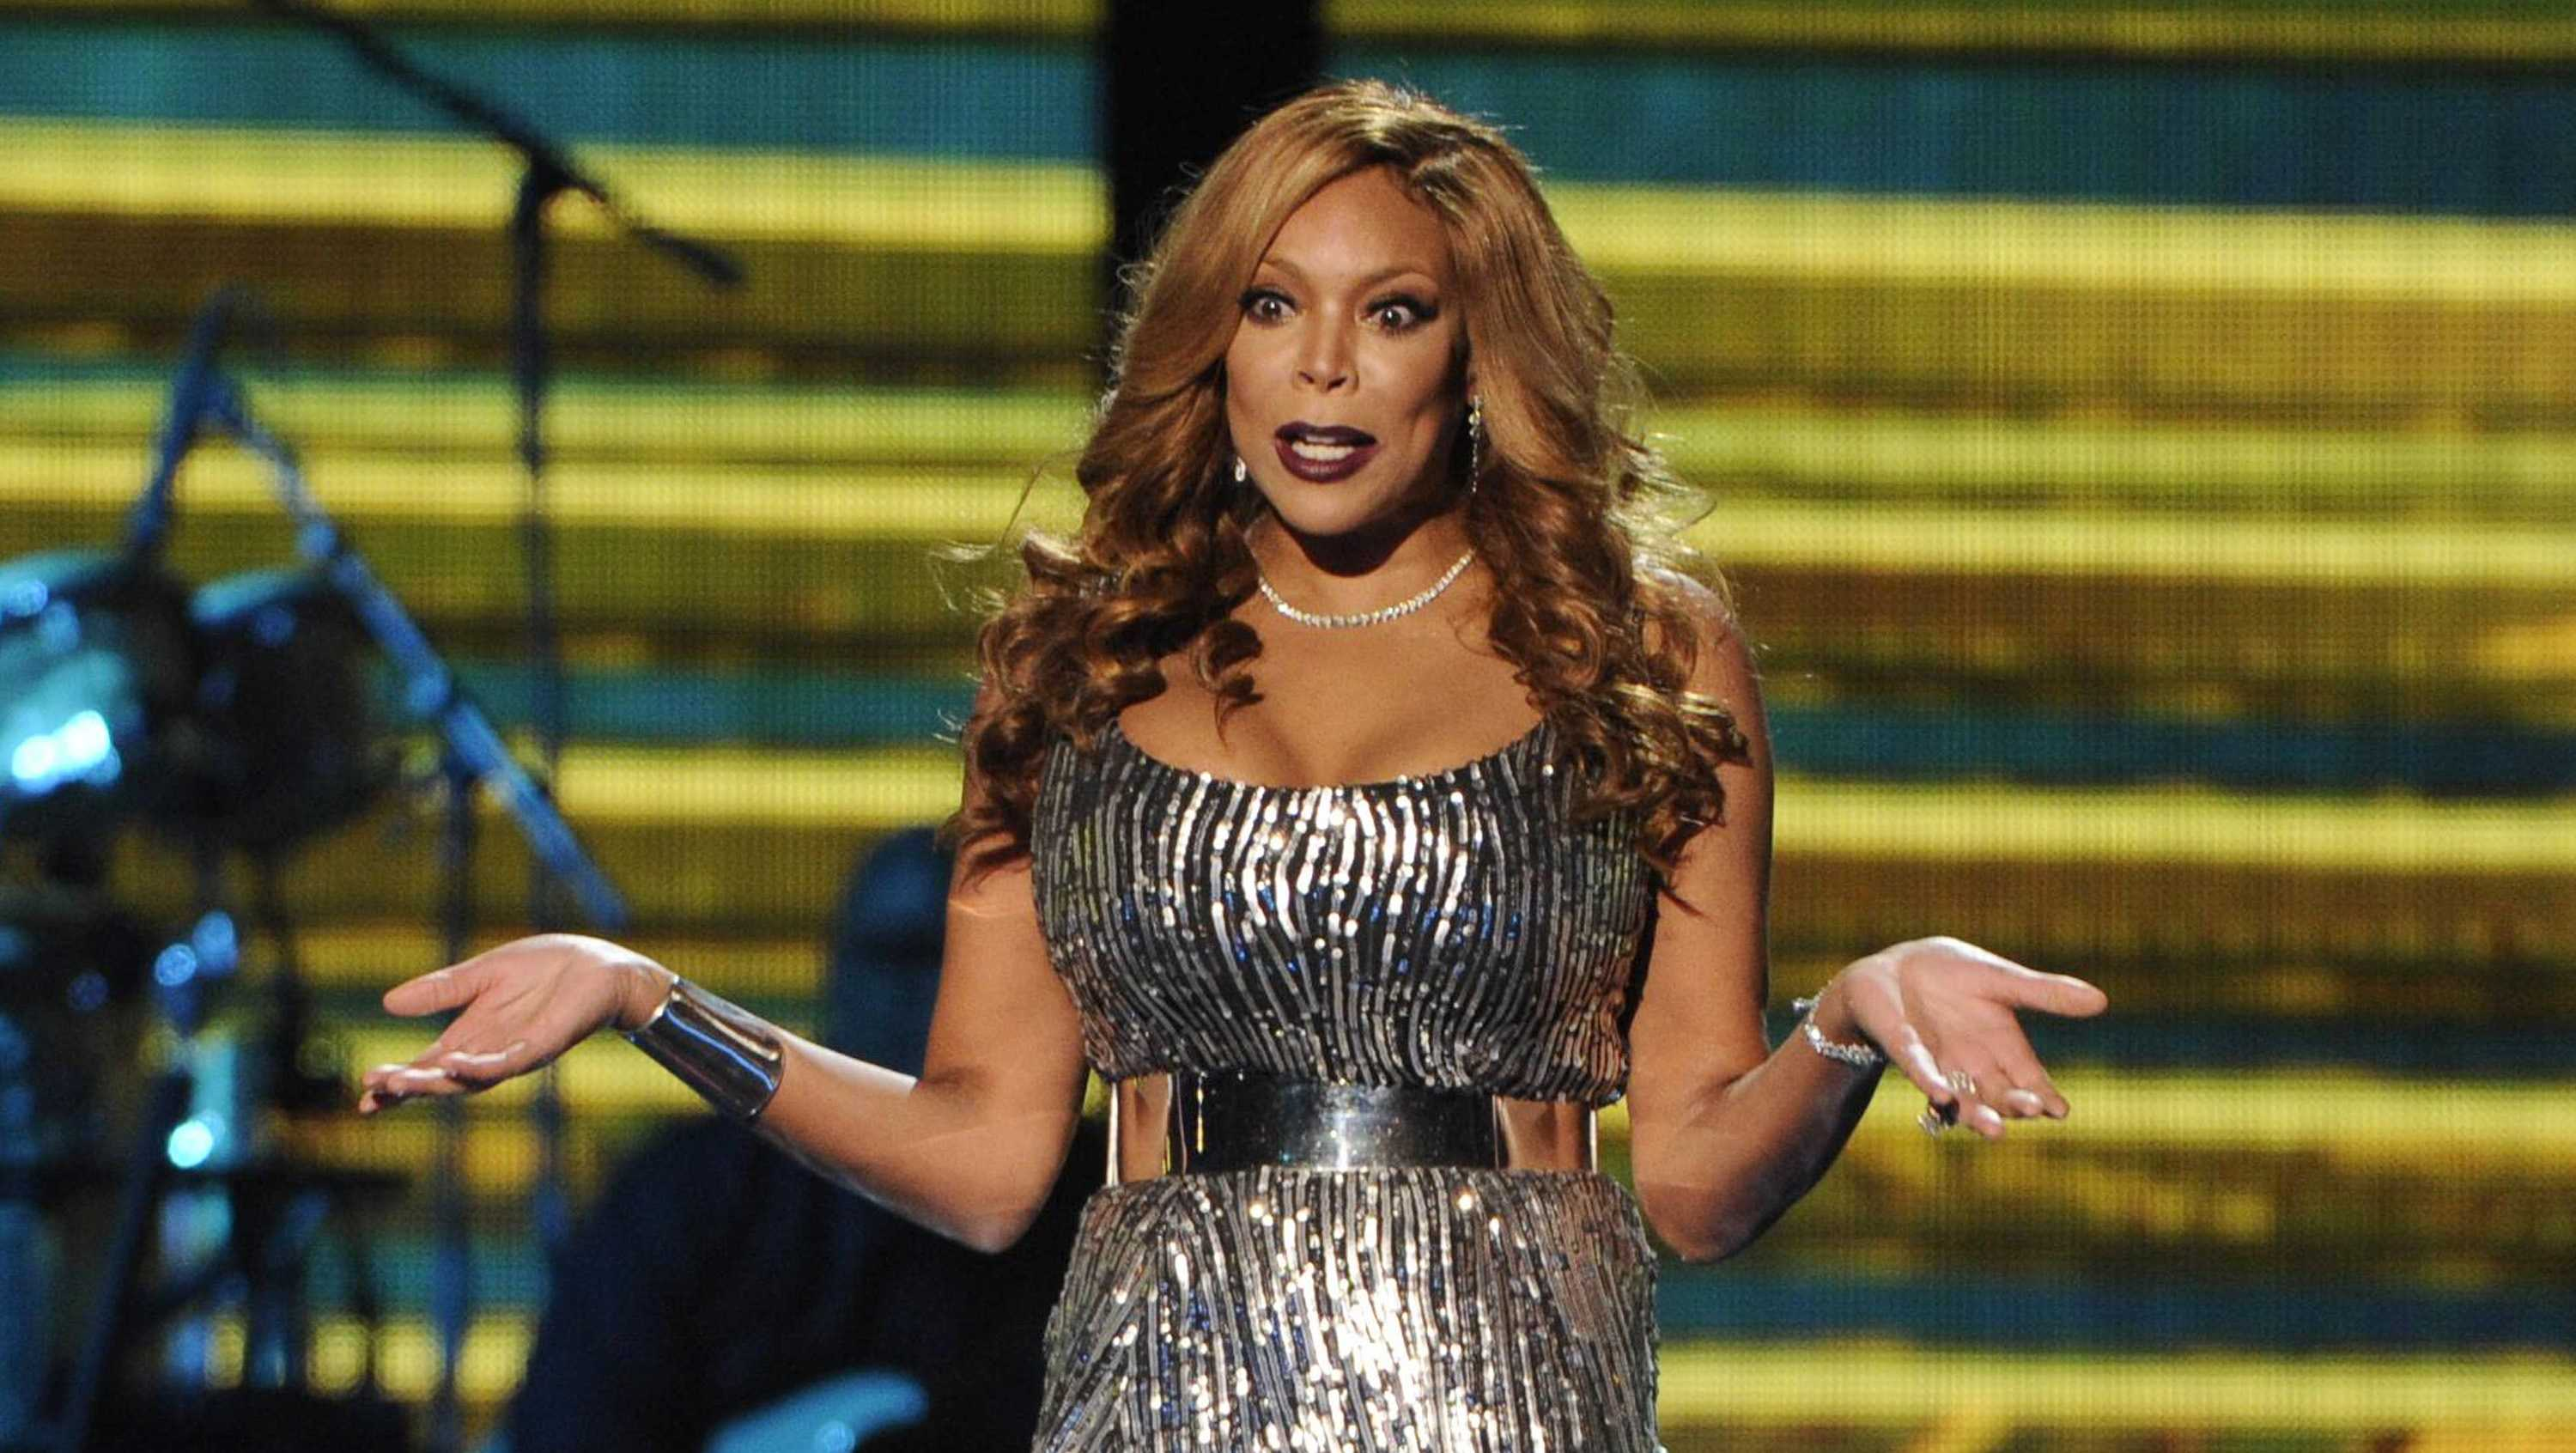 Wendy Williams speaks onstage at the 2014 Soul Train Awards at Orleans Arena on Friday, Nov. 7, 2014, in Las Vegas.